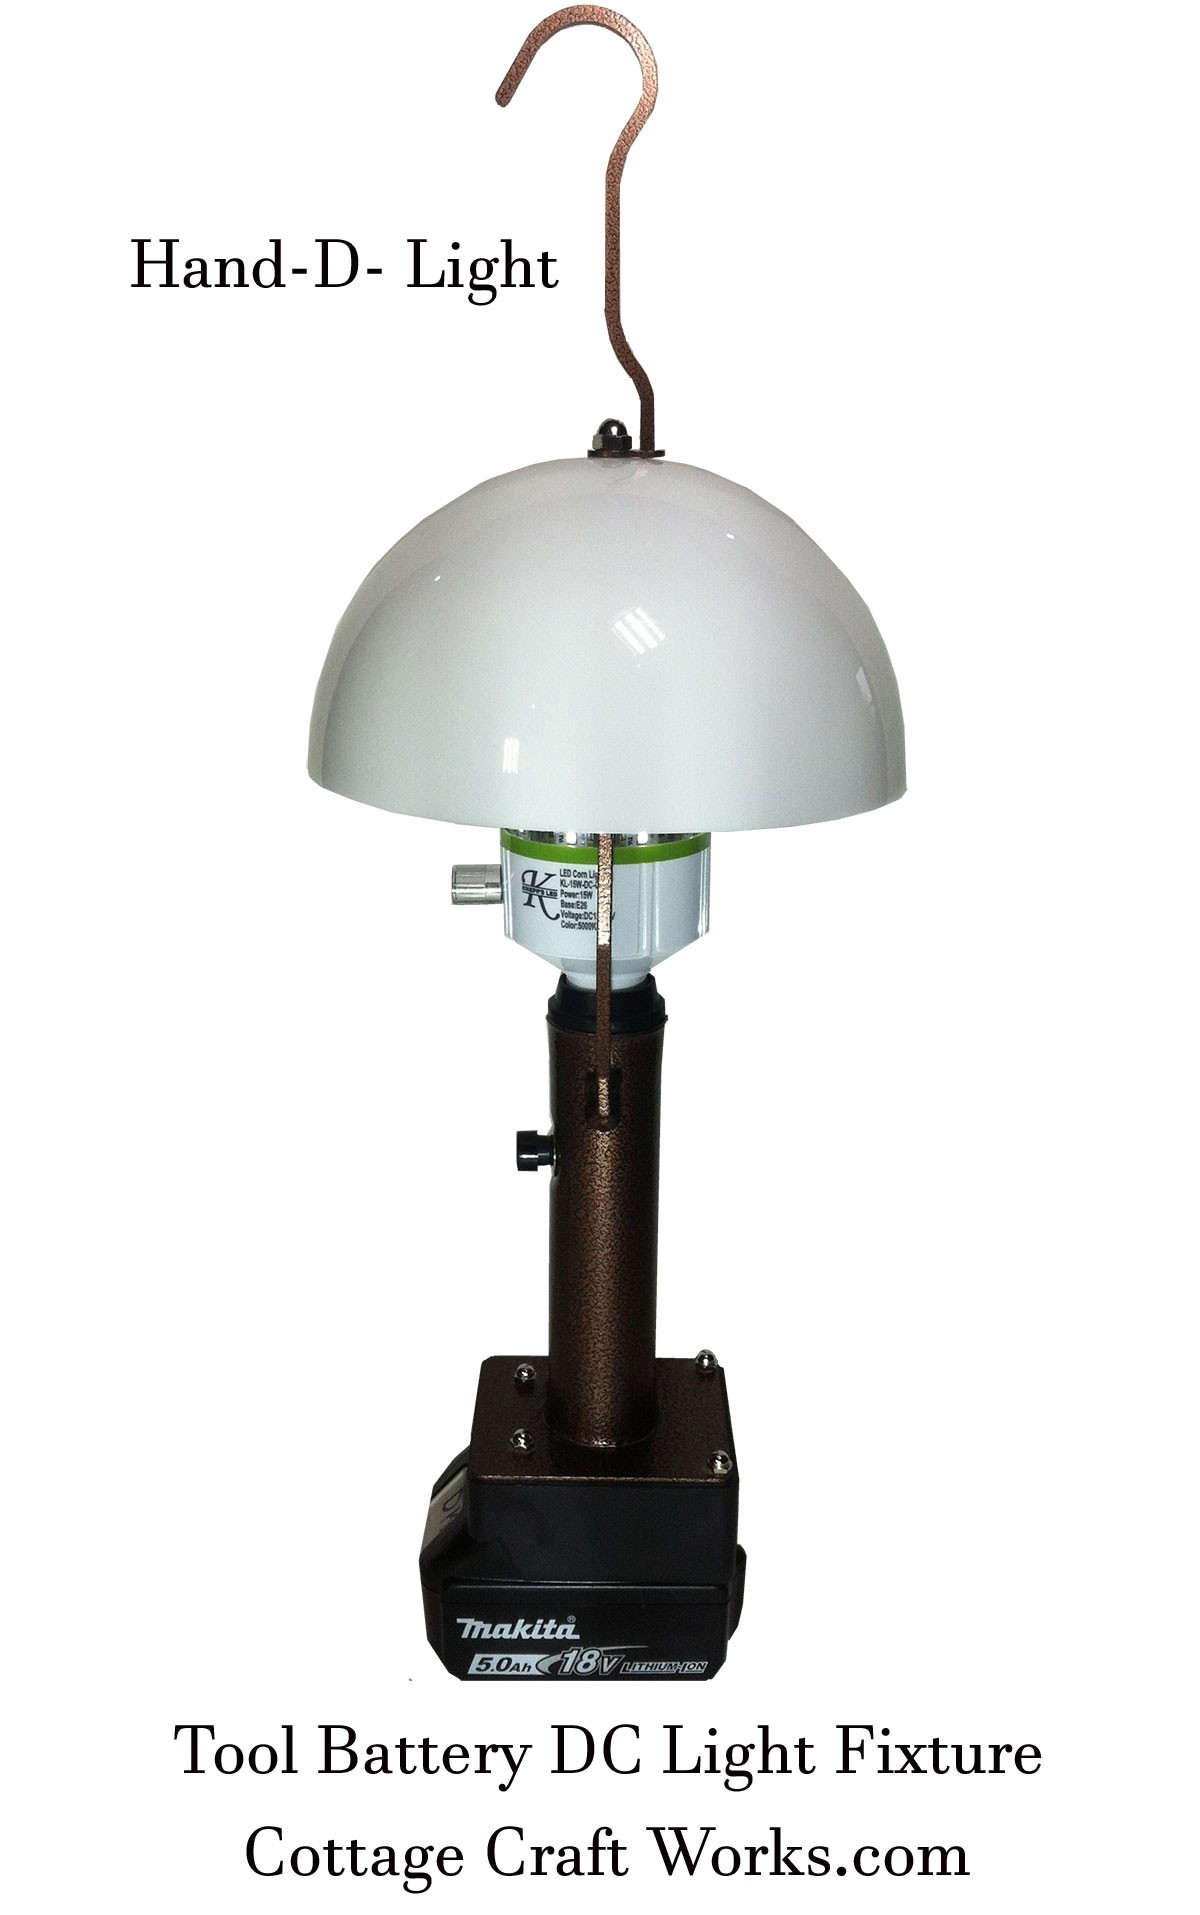 Tool Battery DC Light Fixture